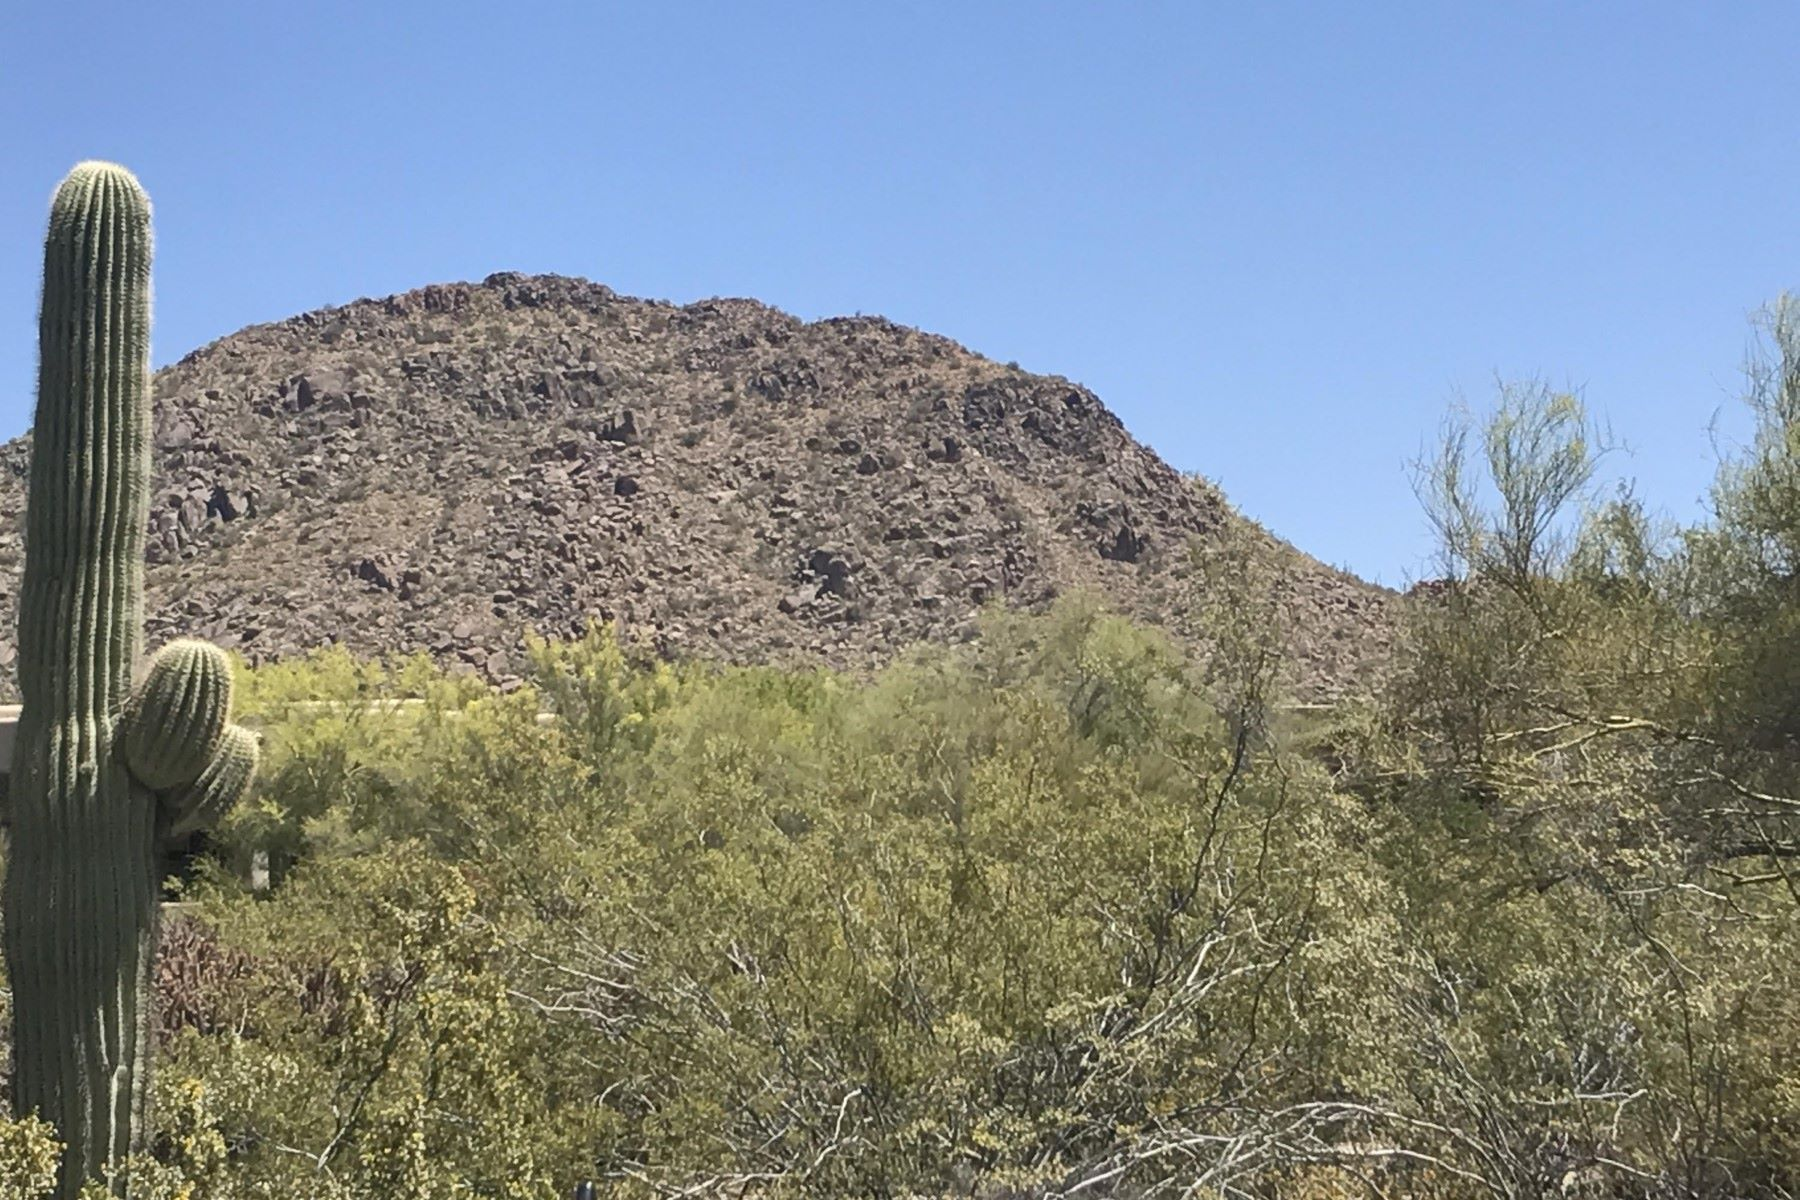 Terreno para Venda às Outstanding cul de sac lot in the exclusive community of Desert Highlands 10040 E Happy Valley Rd #361 Scottsdale, Arizona, 85255 Estados Unidos